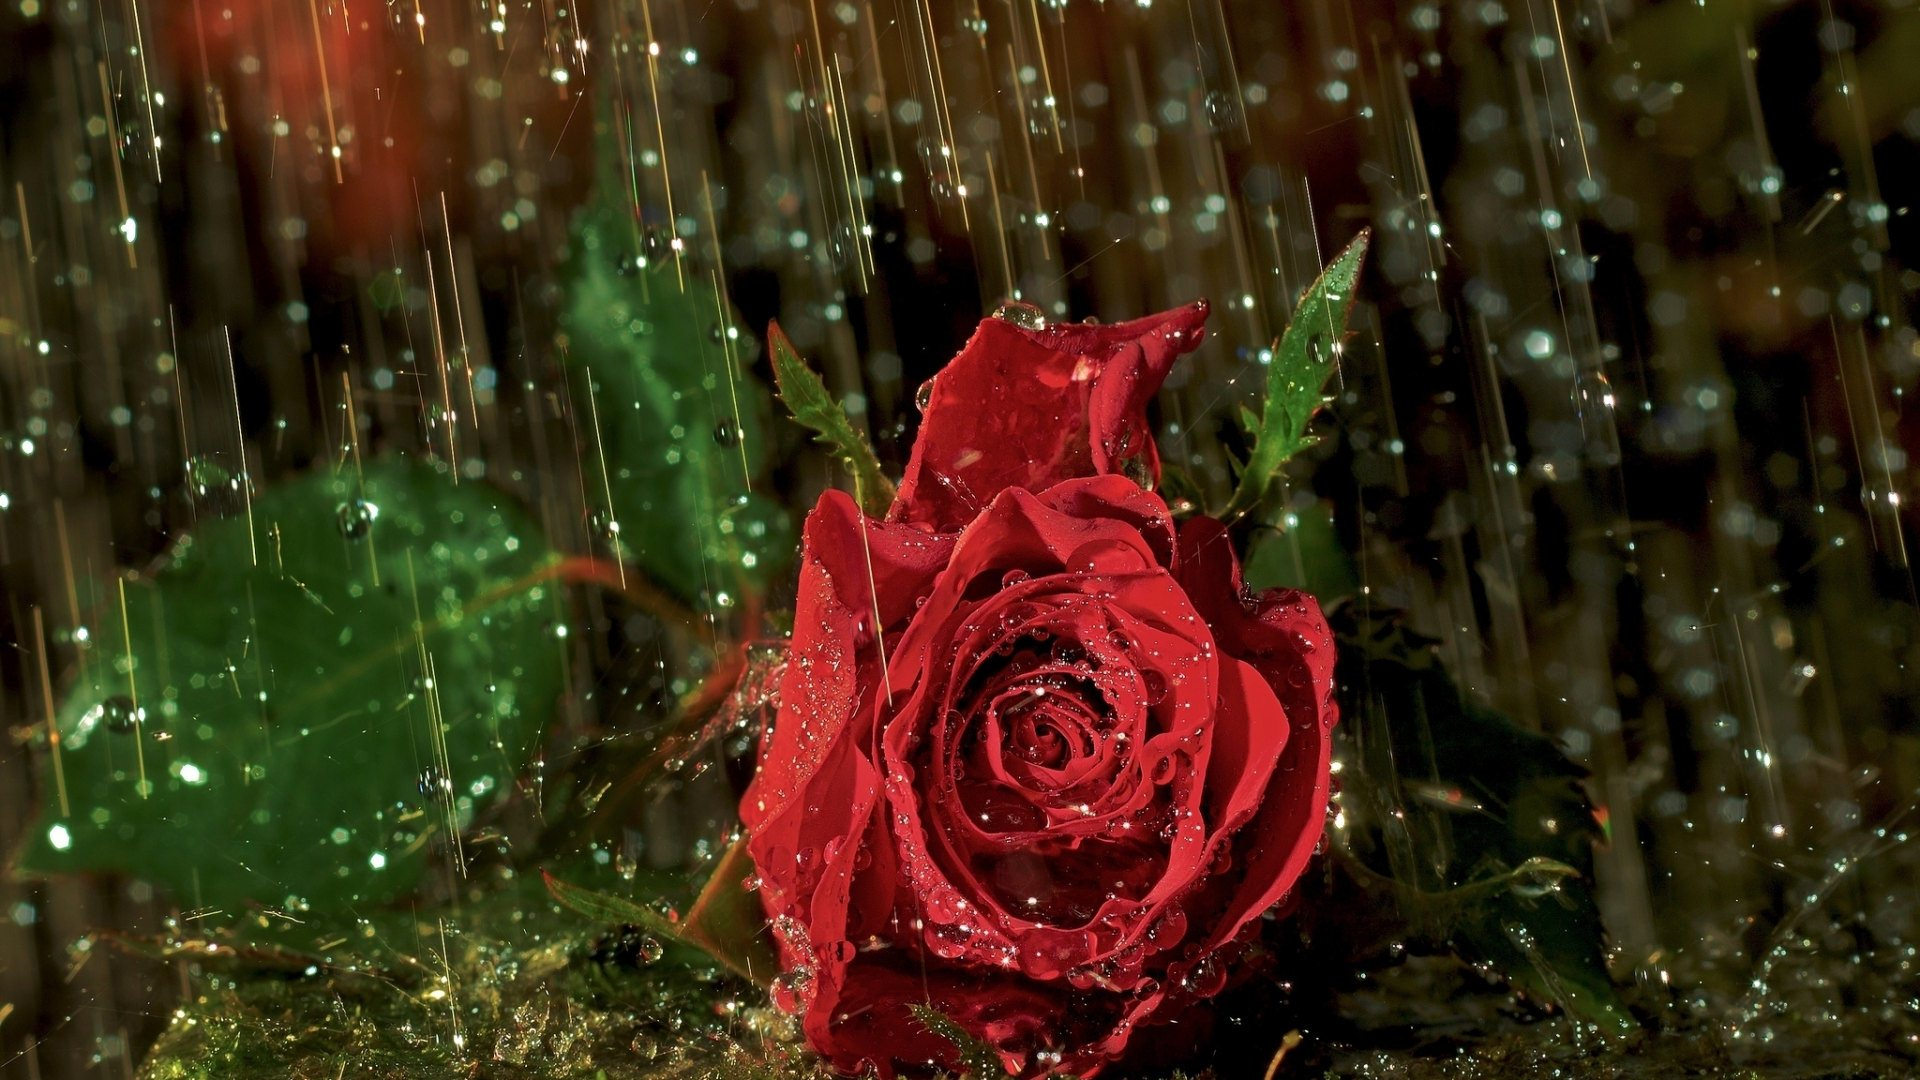 rose in rain wallpaper background, wallpapers